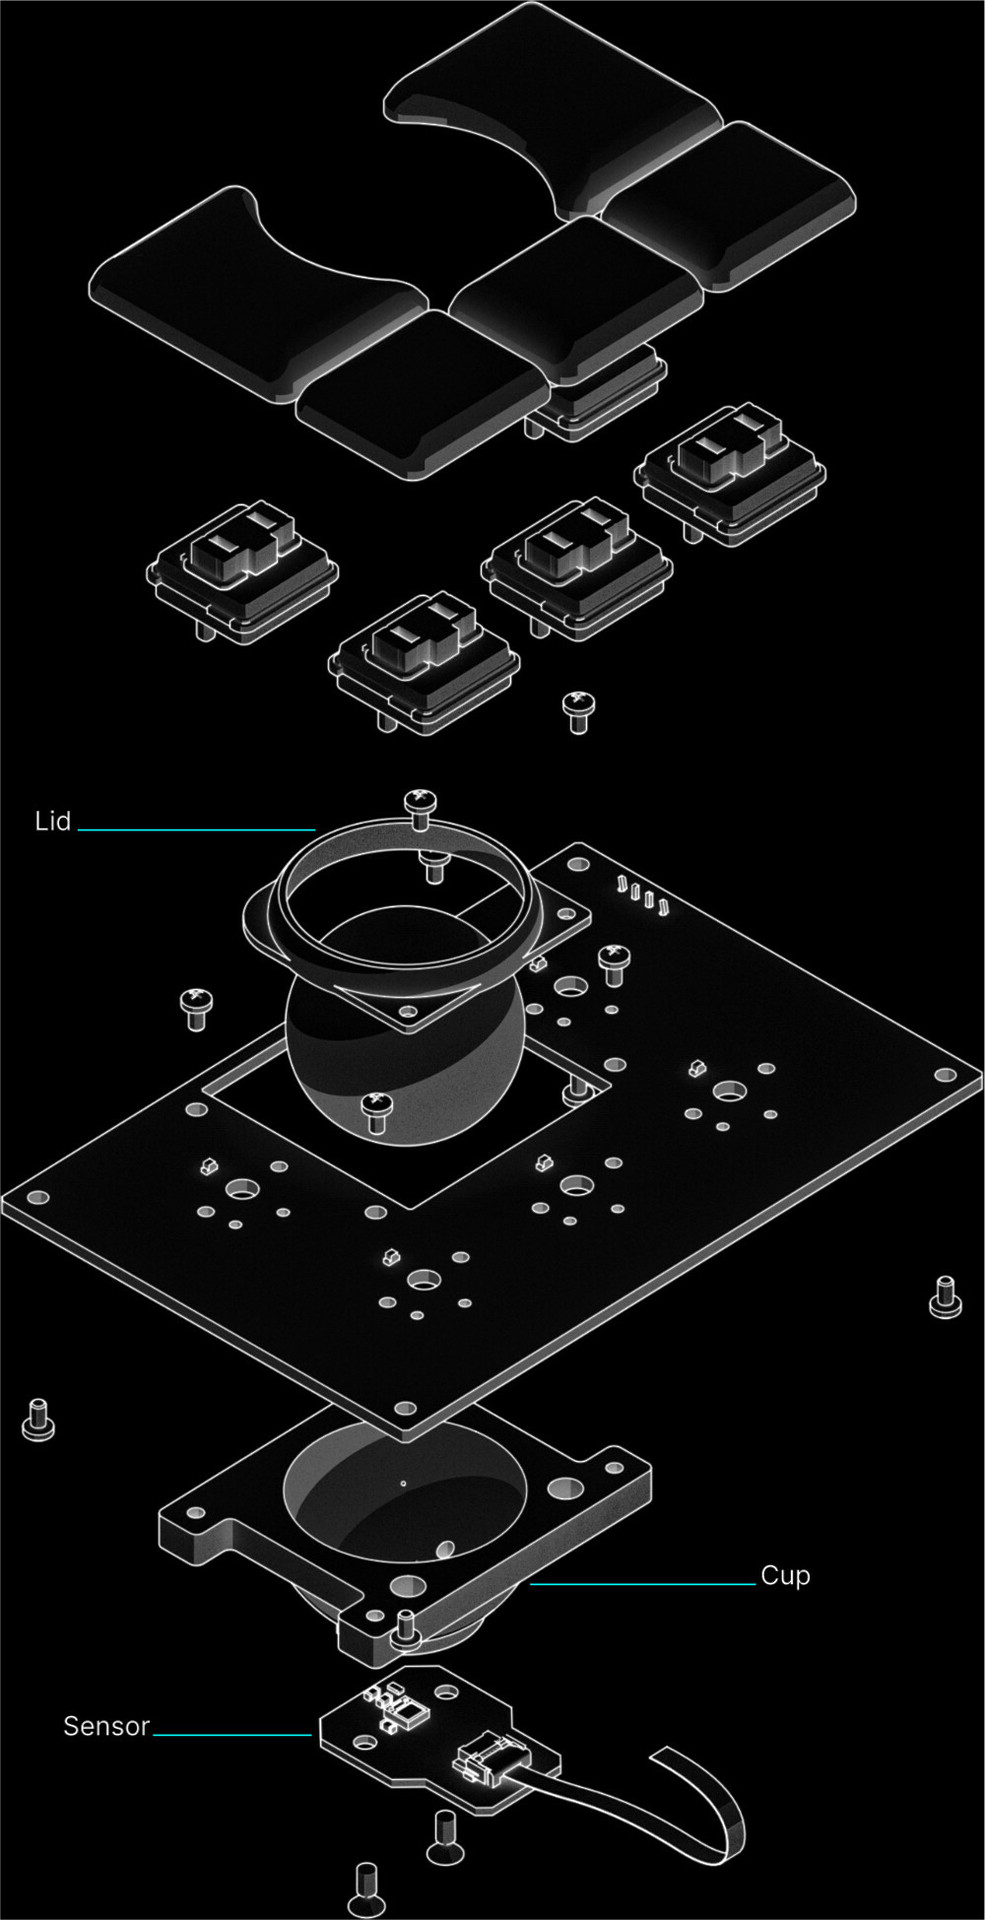 an exploded mechanical drawing of the Reform trackball module